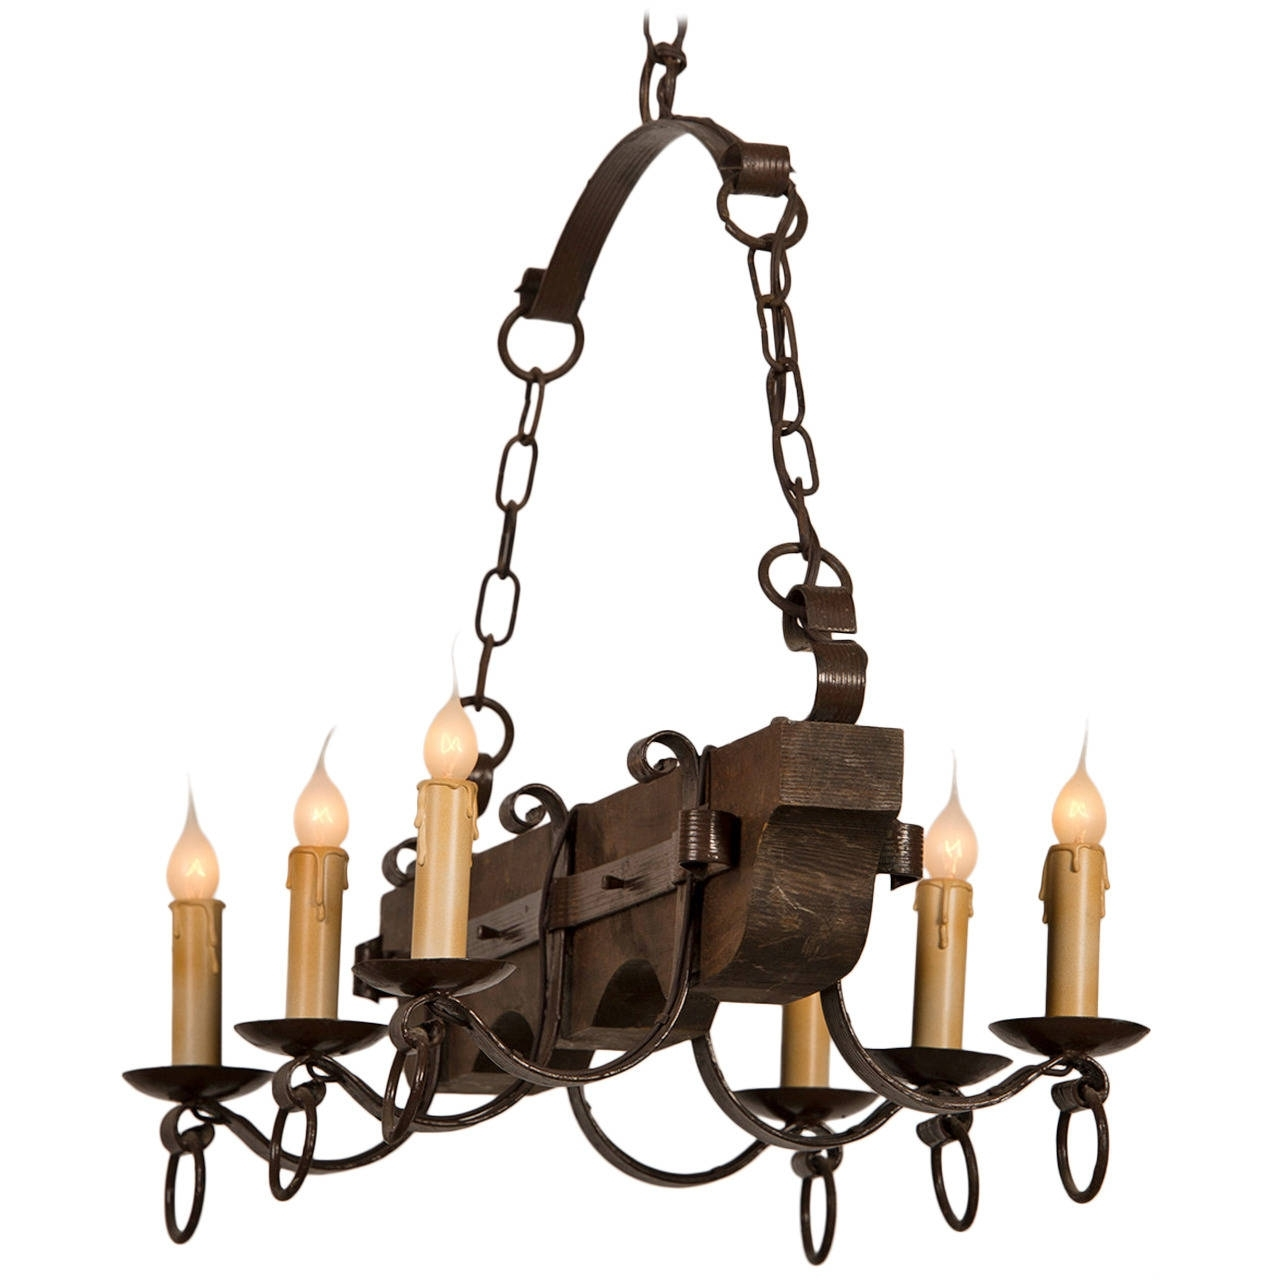 Modern Wrought Iron Chandeliers Within Well Known Pendant Light Installation : Marvelous Wrought Iron Chandeliers (View 12 of 20)